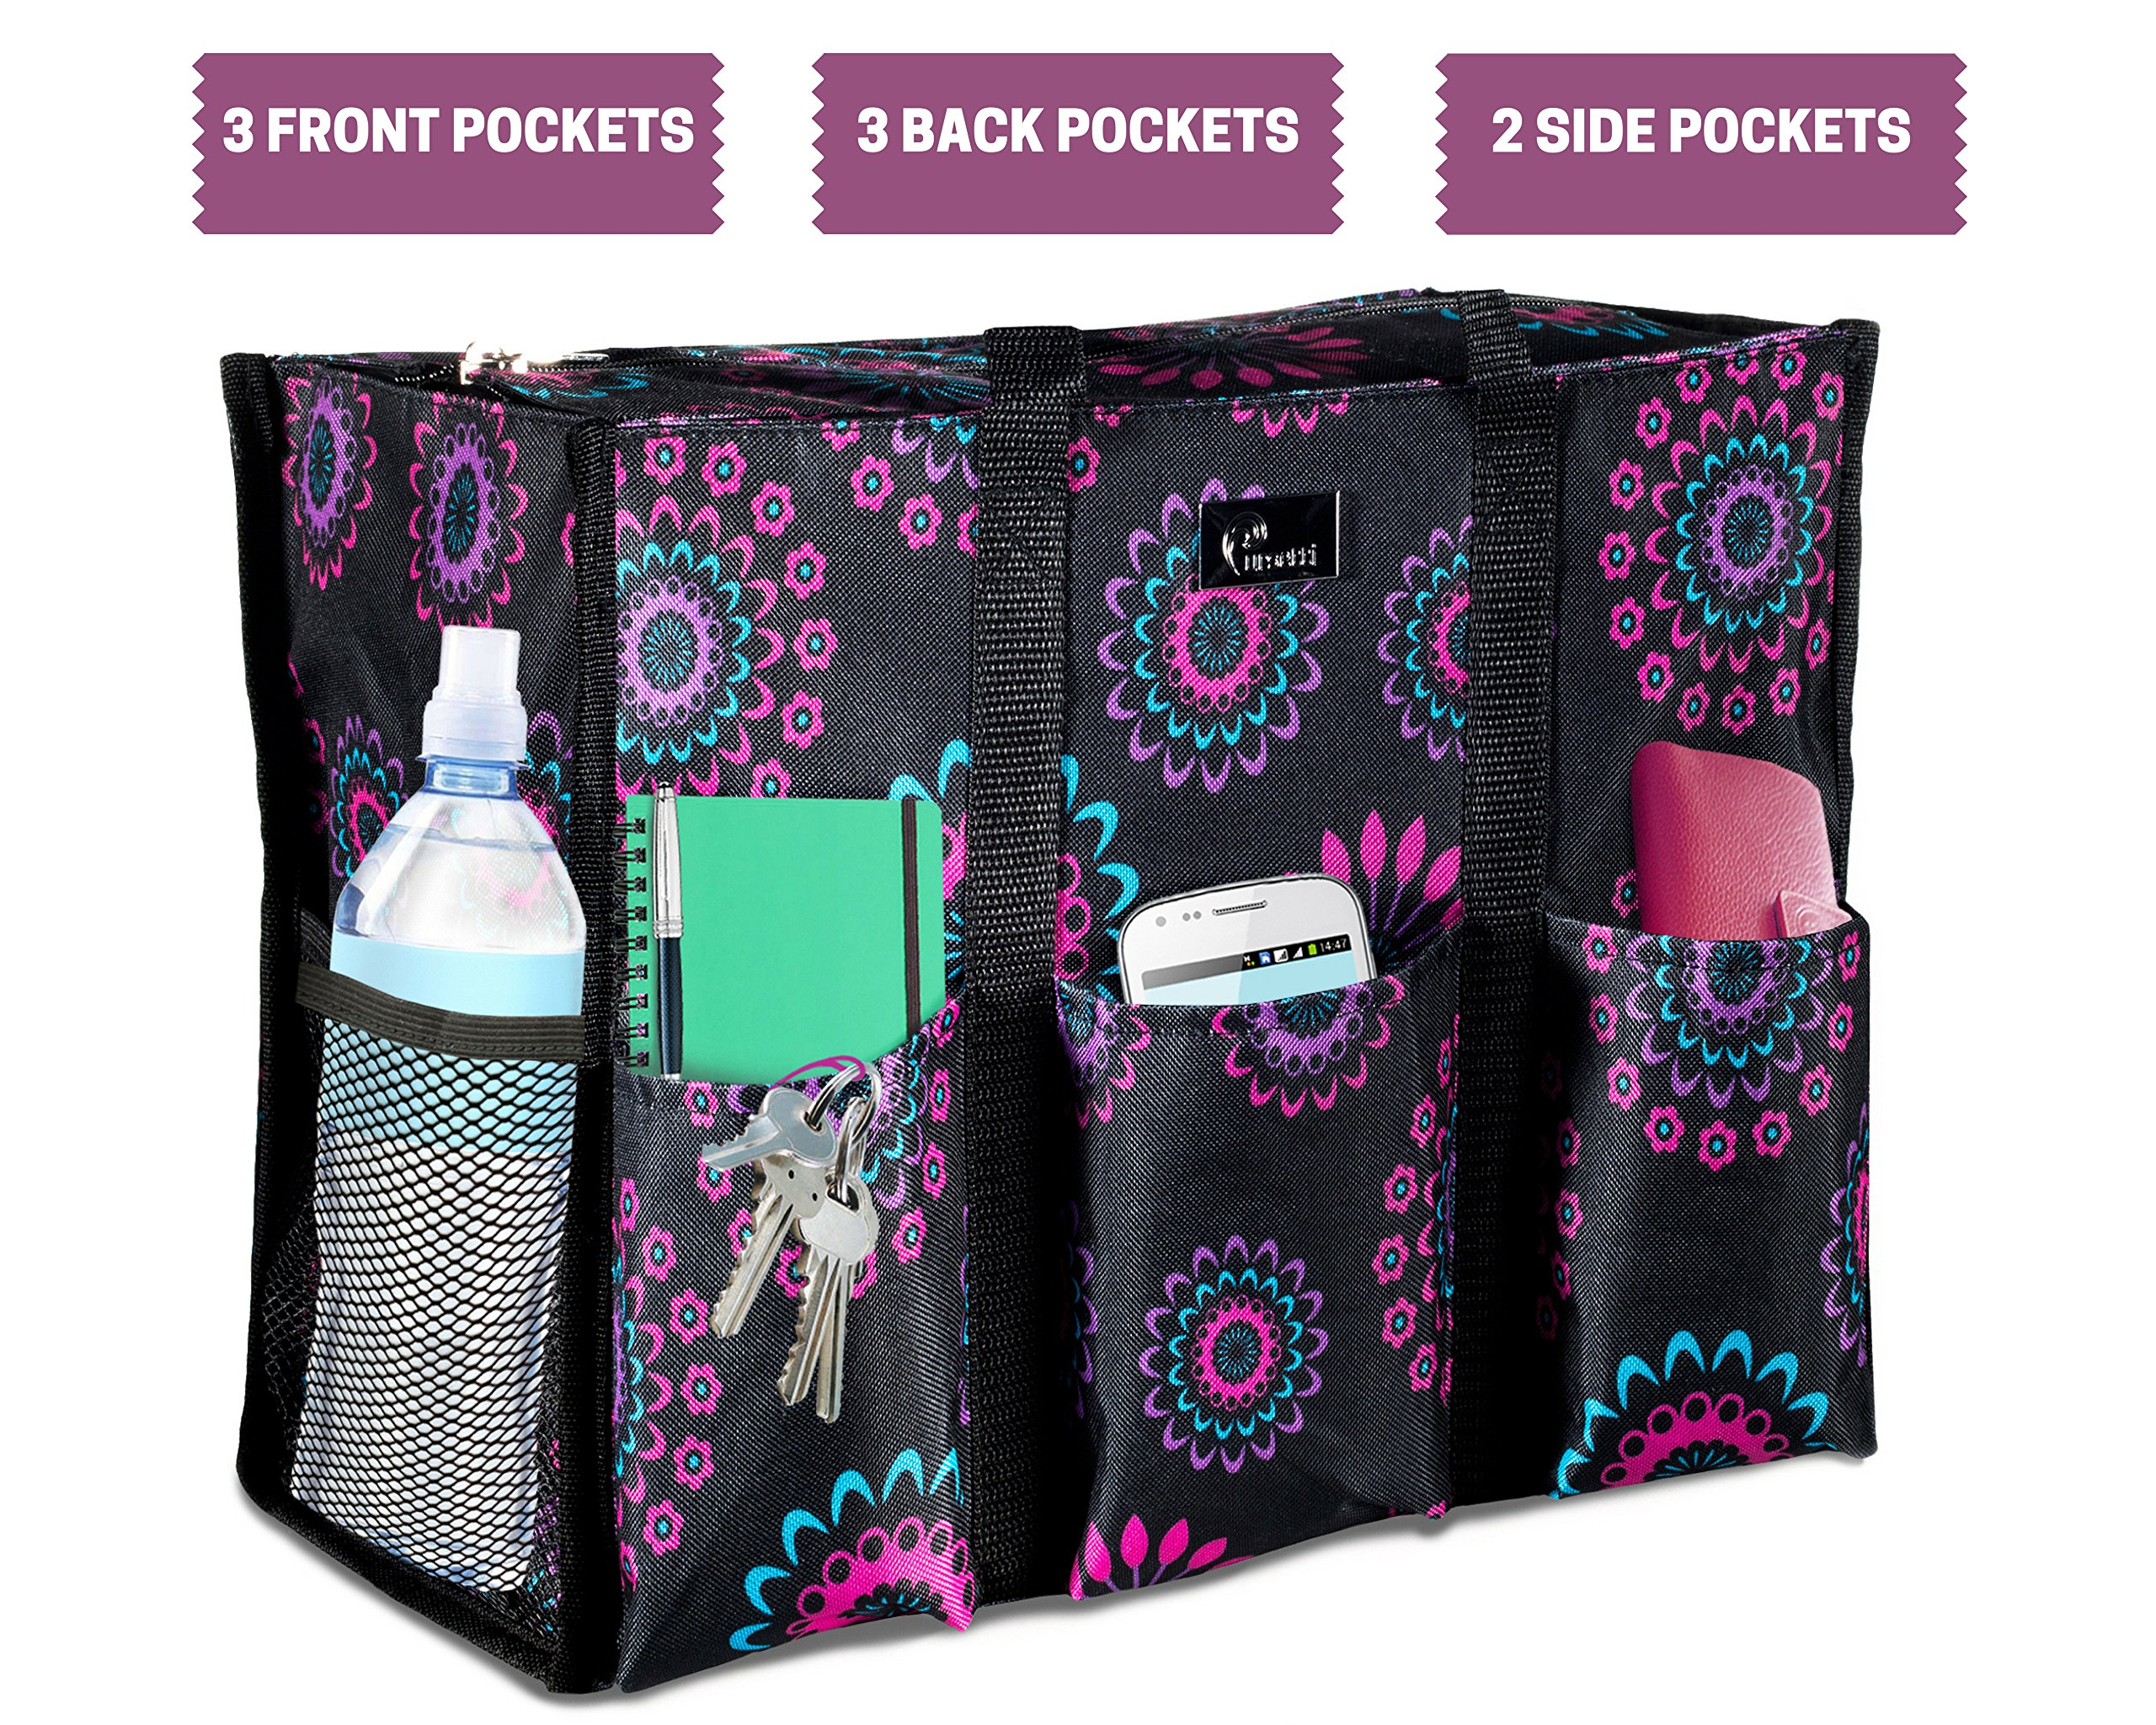 Pursetti Zip-Top Organizing Utility Tote Bag (Purple Circle_L) with Multiple Exterior & Interior Pockets for Working Women, Nurses, Teachers and Soccer Moms by Pursetti (Image #3)